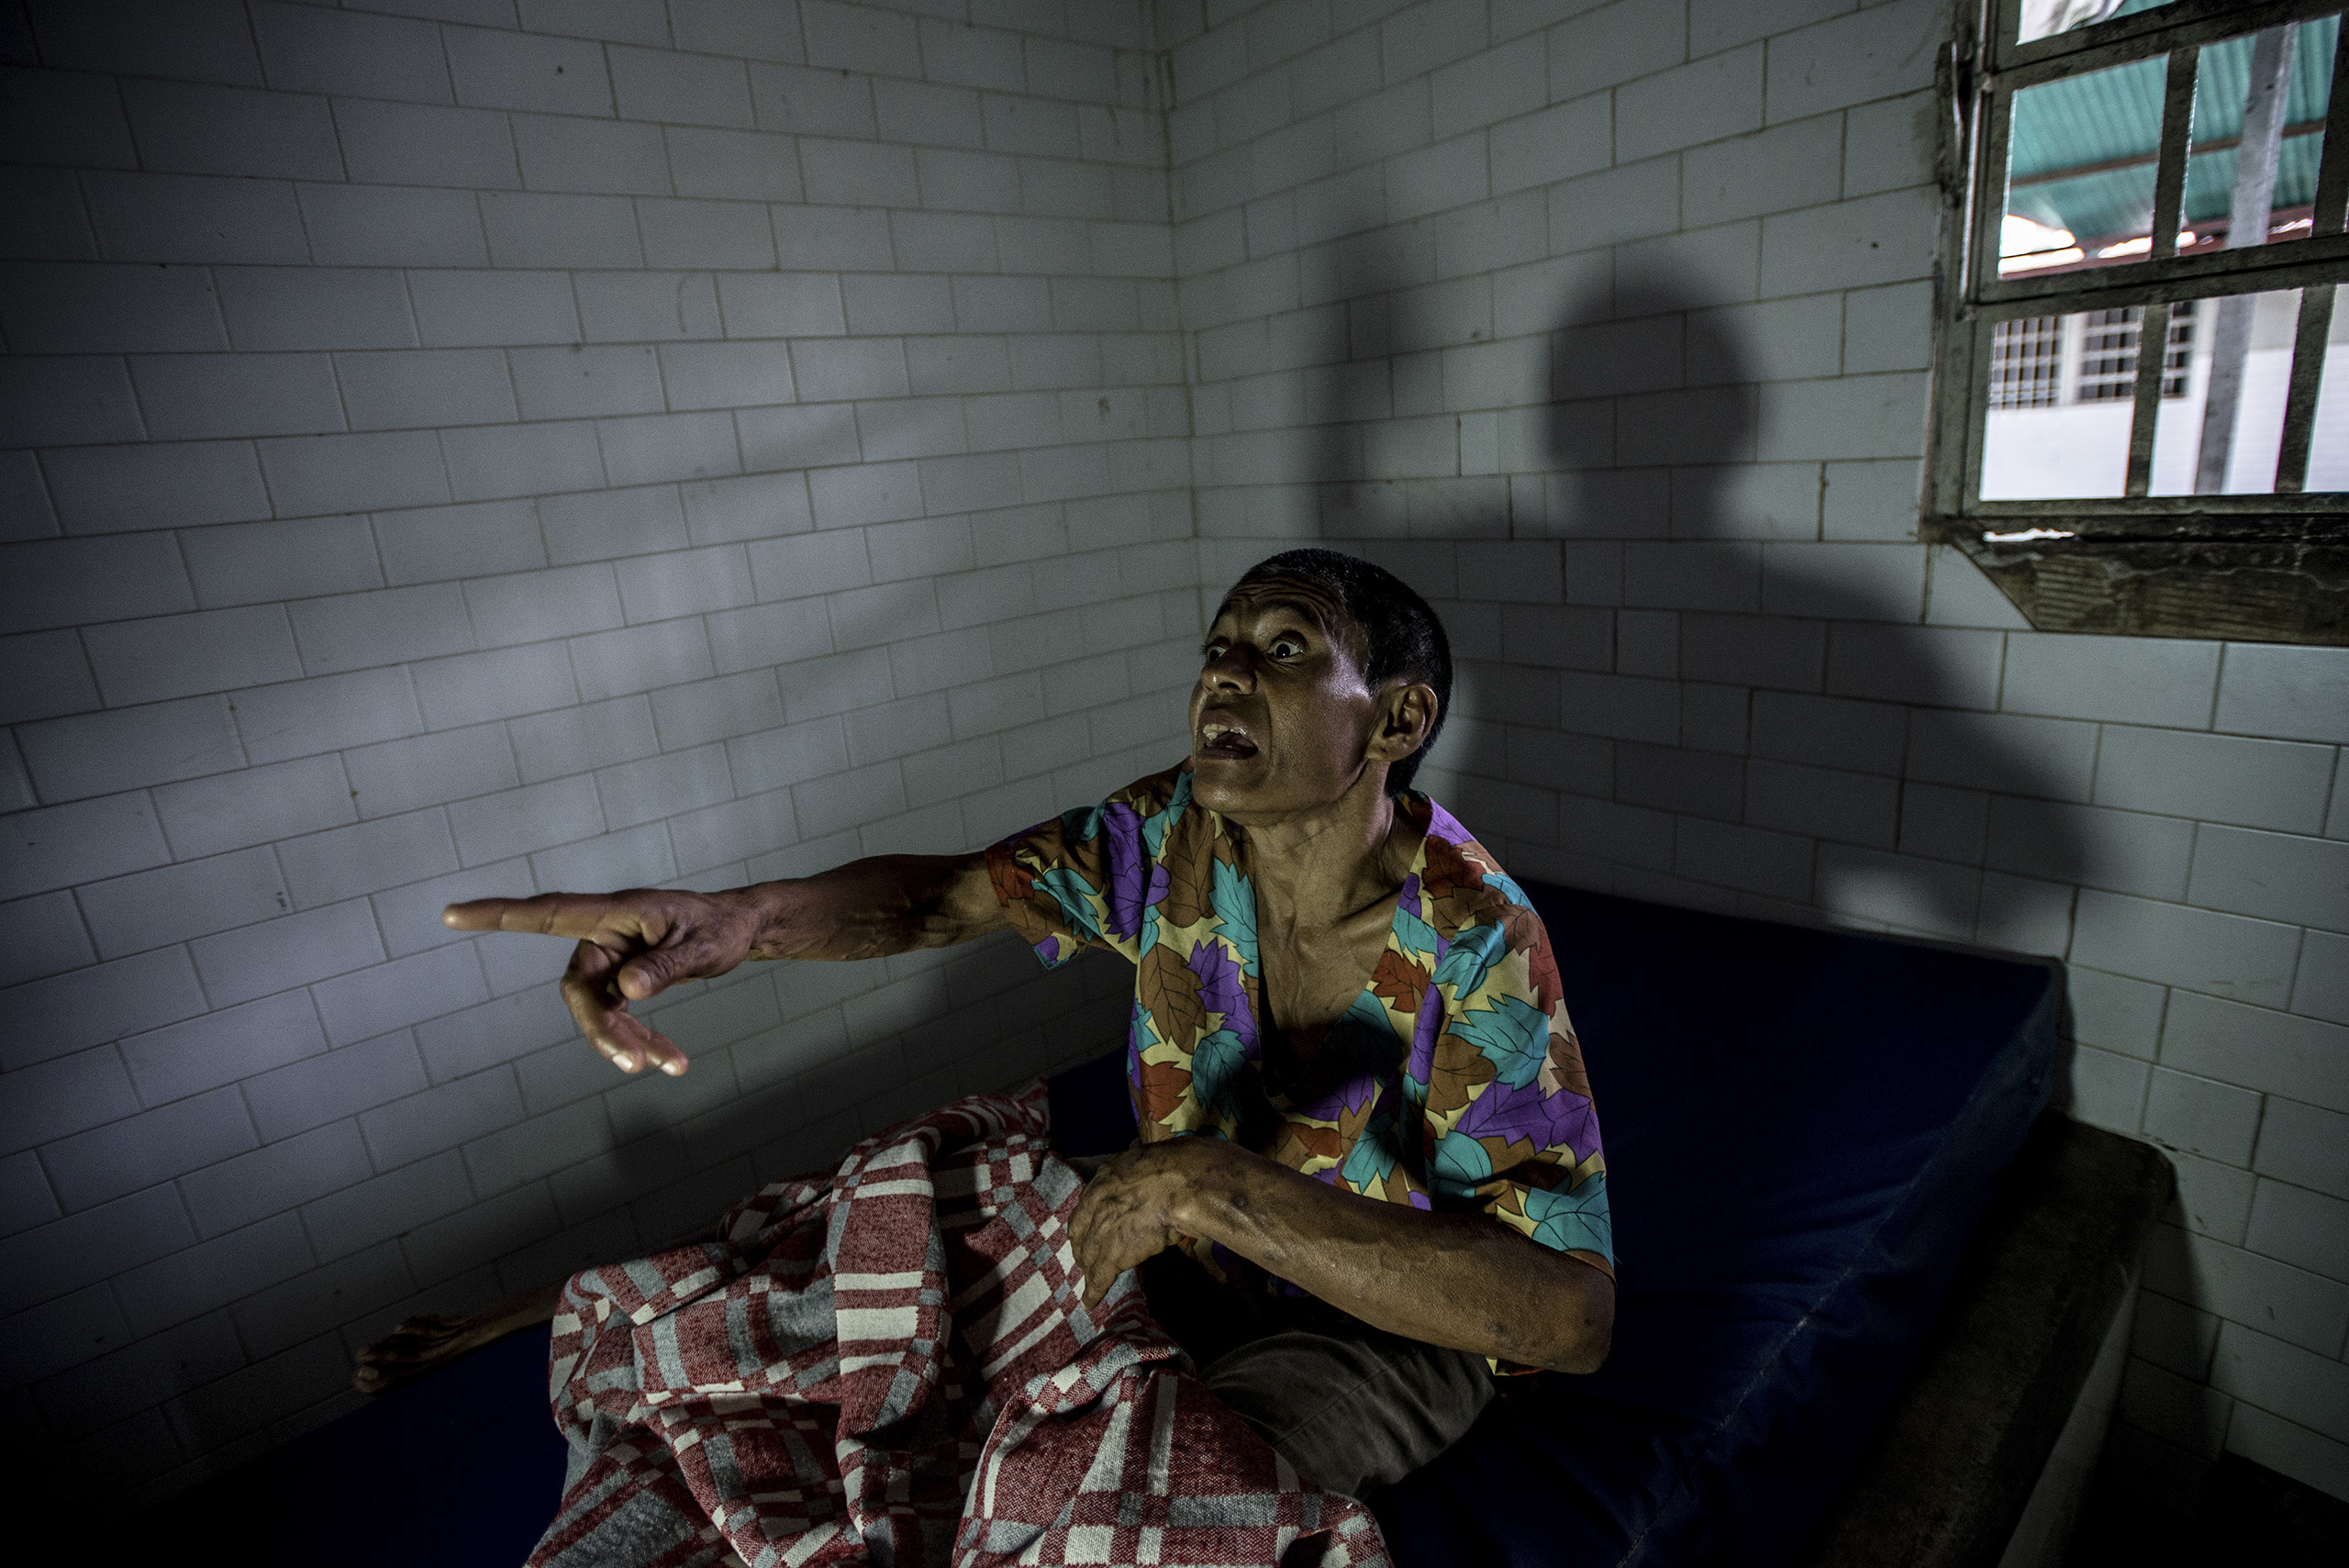 Margarita Silva, a paranoid schizophrenic, yells at nurses from her solitary confinement cell, where she was being held after biting off another patient's nose and eating it, at the state-run Pampero Psychiatric Hospital in Barquisimeto, Venezuela, on Aug. 24, 2016.